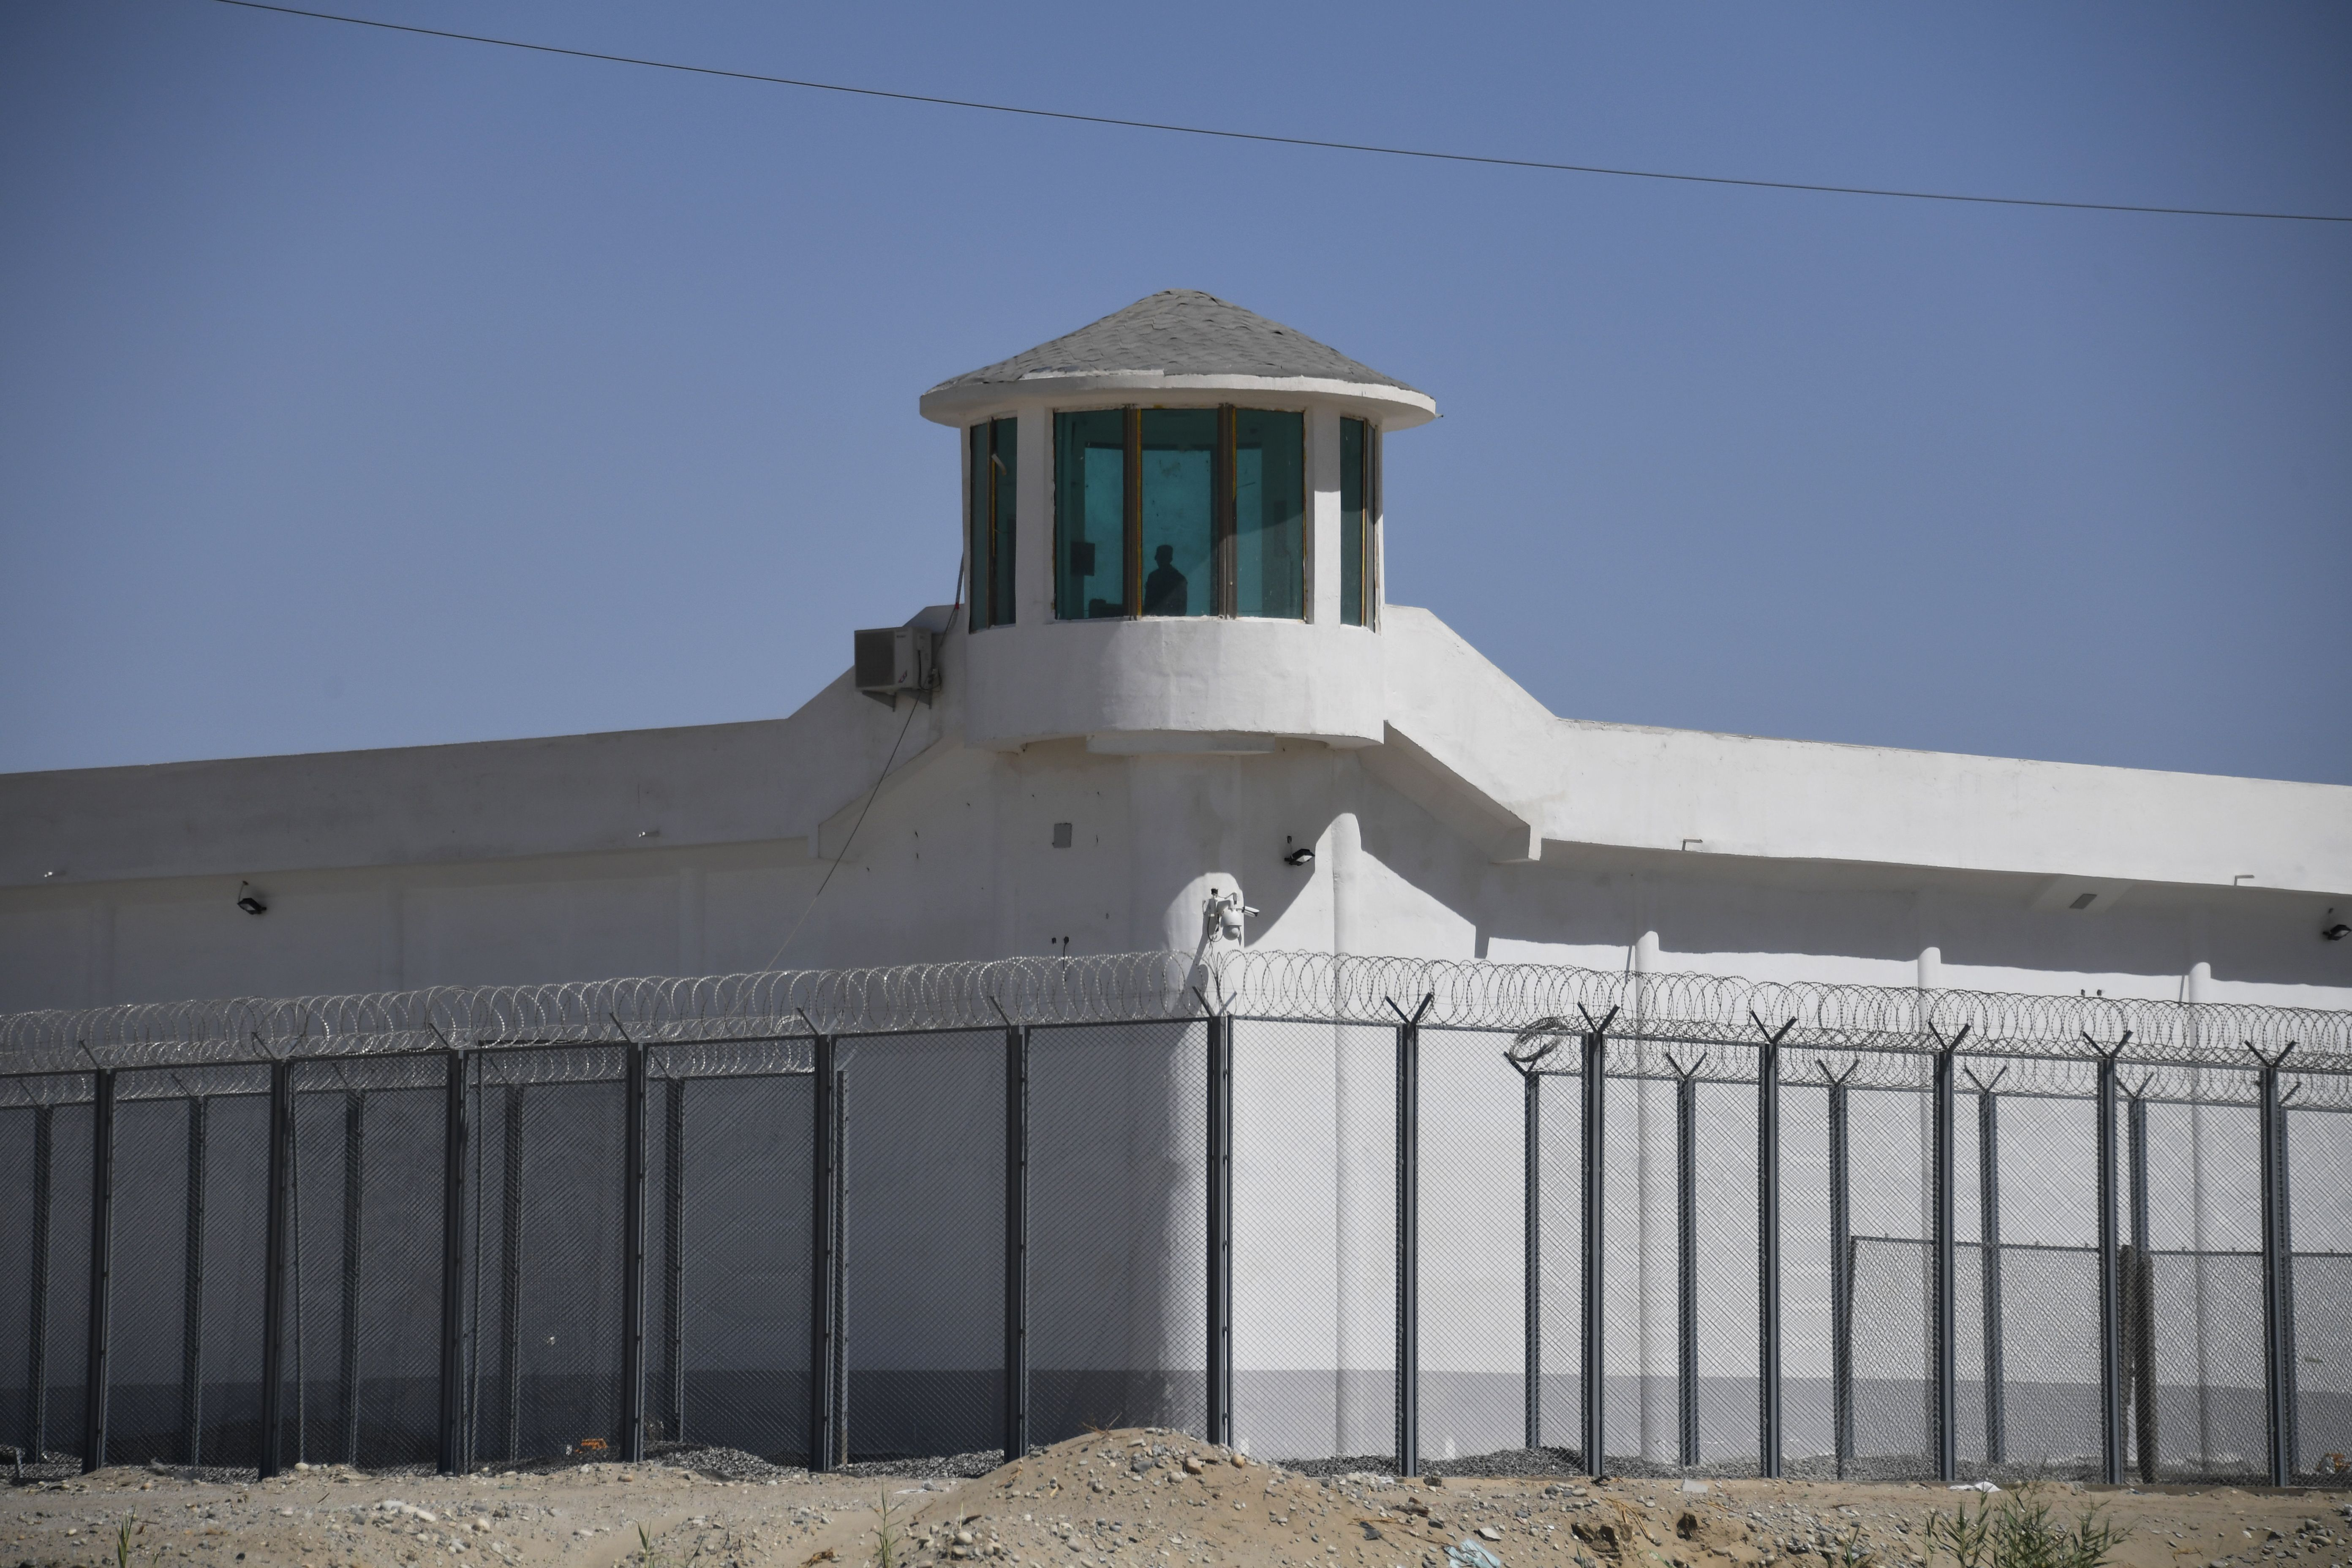 """TOPSHOT - This photo taken on May 31, 2019 shows a watchtower on a high-security facility near what is believed to be a re-education camp where mostly Muslim ethnic minorities are detained, on the outskirts of Hotan, in China's northwestern Xinjiang region. - As many as one million ethnic Uighurs and other mostly Muslim minorities are believed to be held in a network of internment camps in Xinjiang, but China has not given any figures and describes the facilities as """"vocational education centres"""" aimed at steering people away from extremism. (Photo by GREG BAKER / AFP) / TO GO WITH AFP STORY CHINA-XINJIANG-MEDIA-RIGHTS-PRESS,FOCUS BY EVA XIAO (Photo credit should read GREG BAKER/AFP via Getty Images)"""